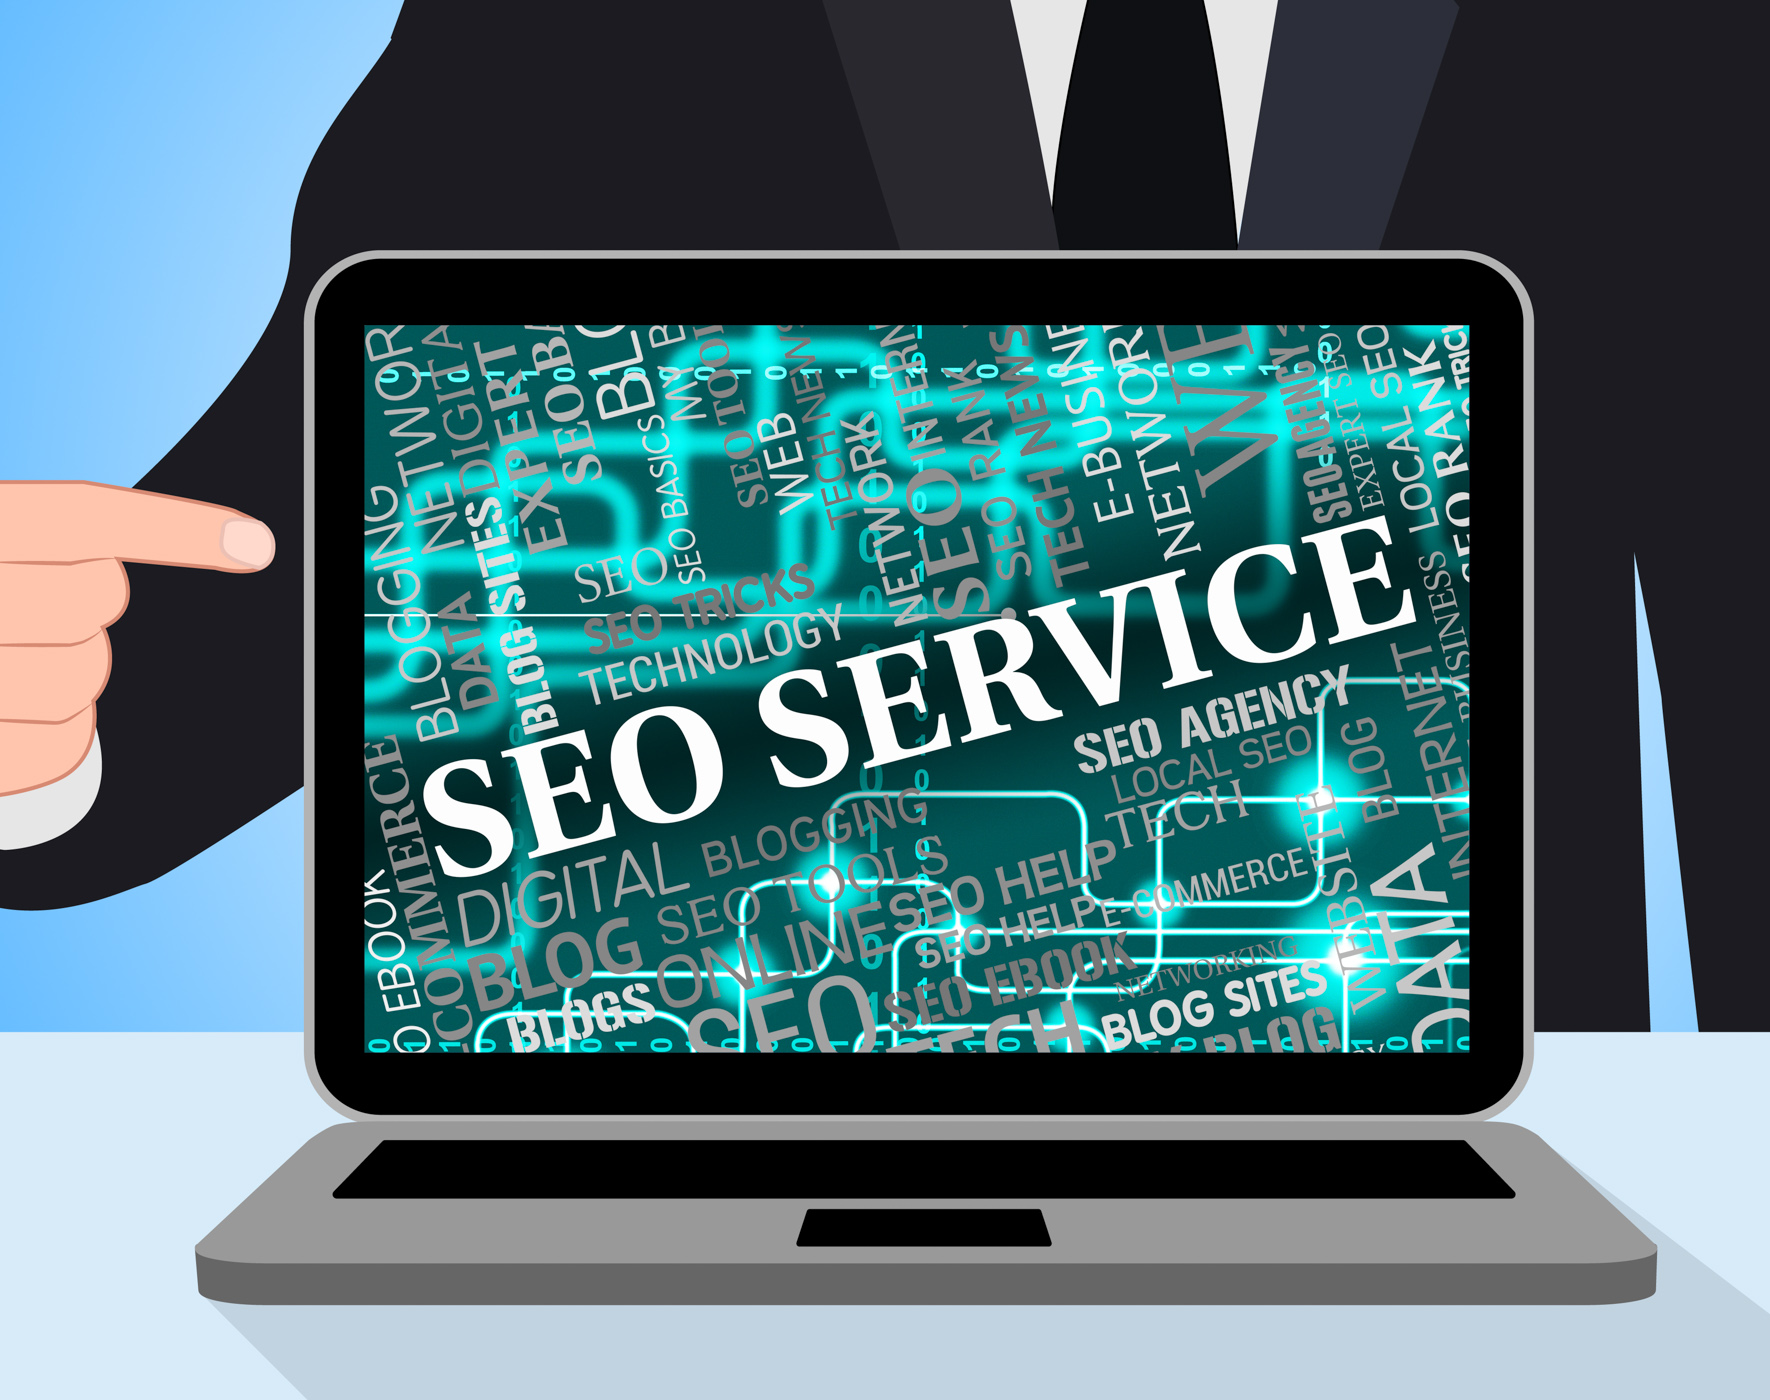 Seo service shows web site and assist photo